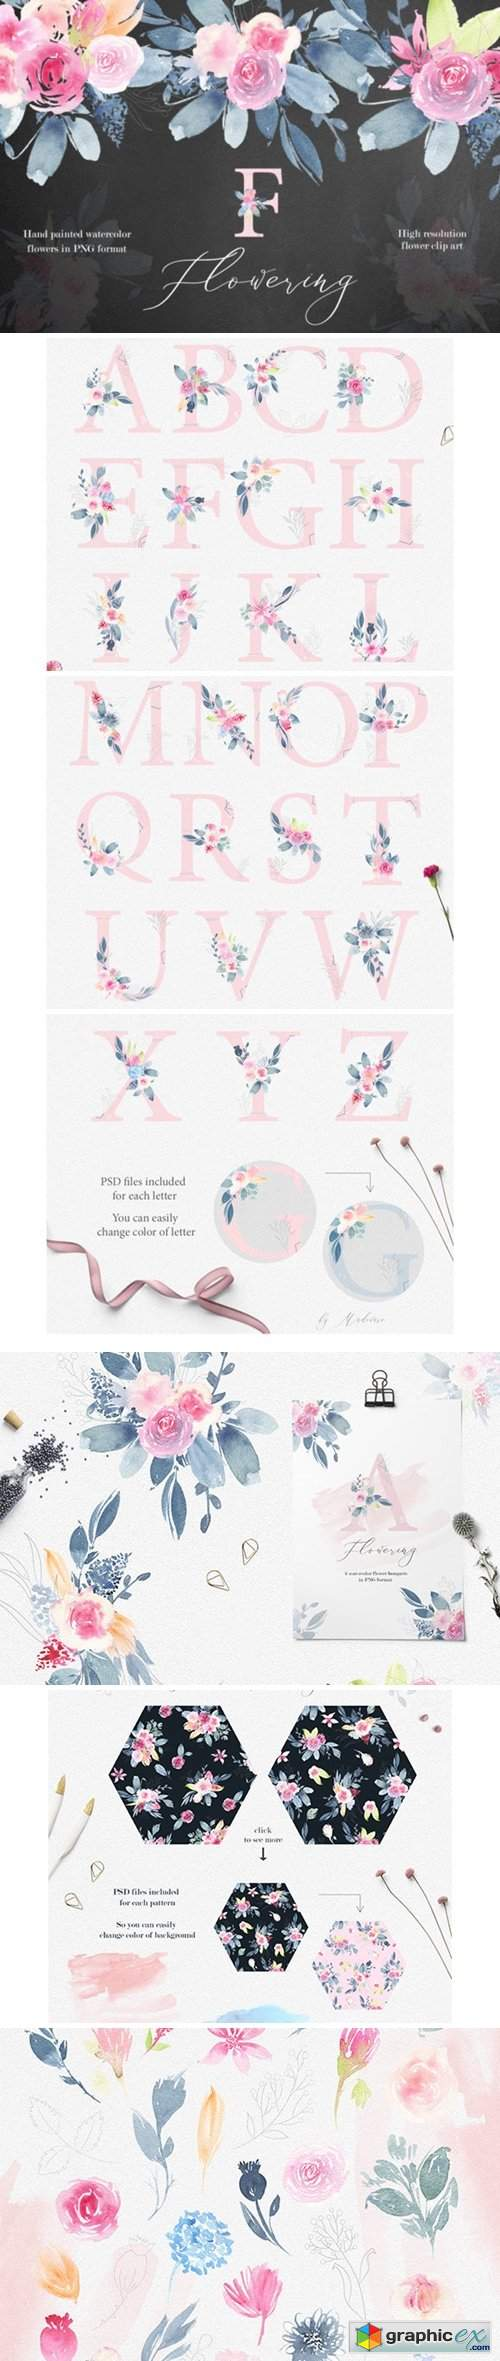 Flowering Watercolor Graphic Set